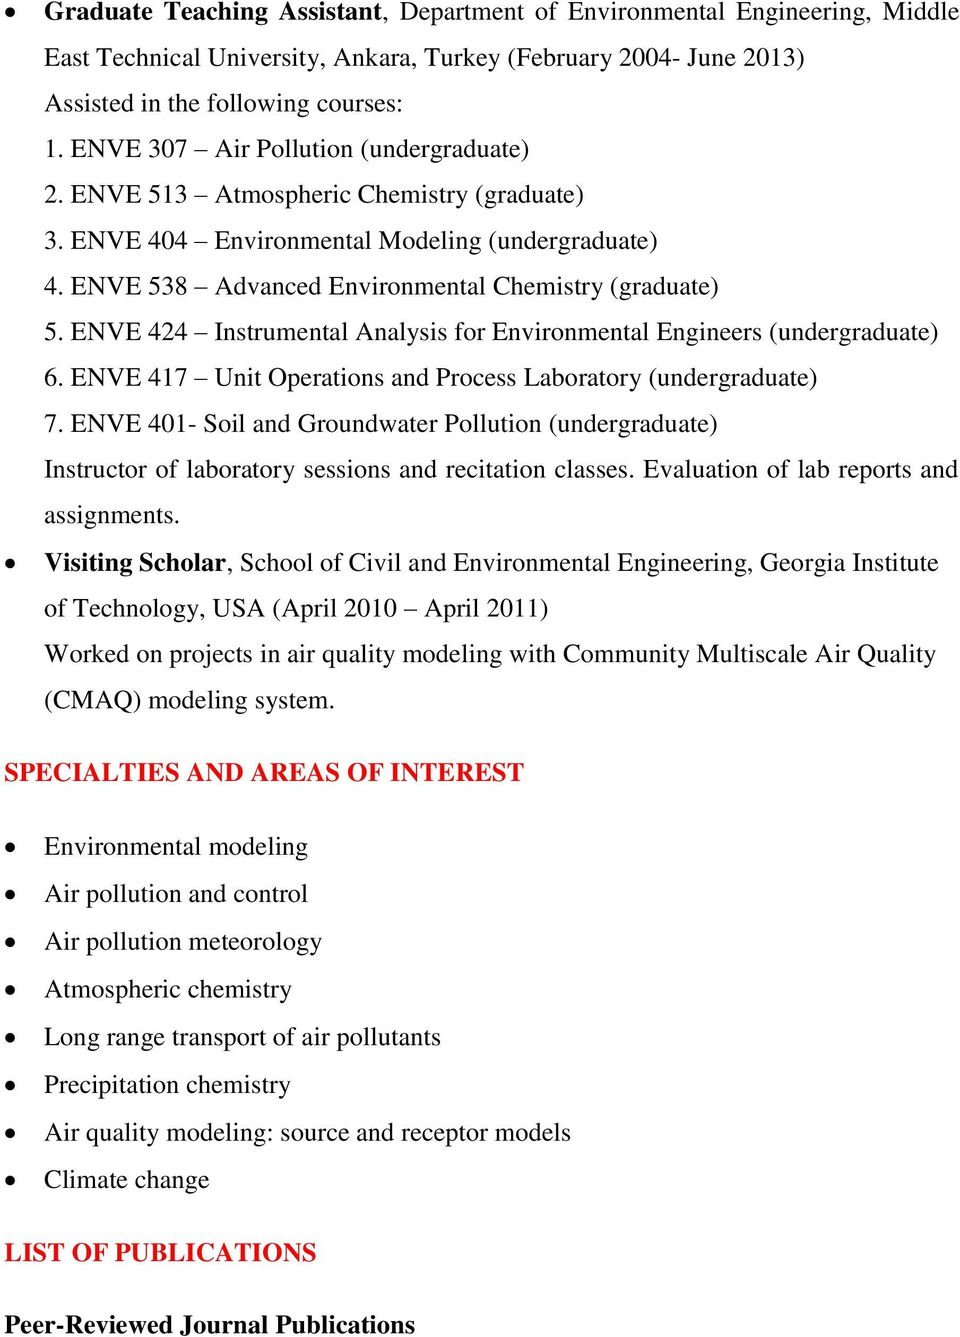 ENVE 424 Instrumental Analysis for Environmental Engineers (undergraduate) 6. ENVE 417 Unit Operations and Process Laboratory (undergraduate) 7.